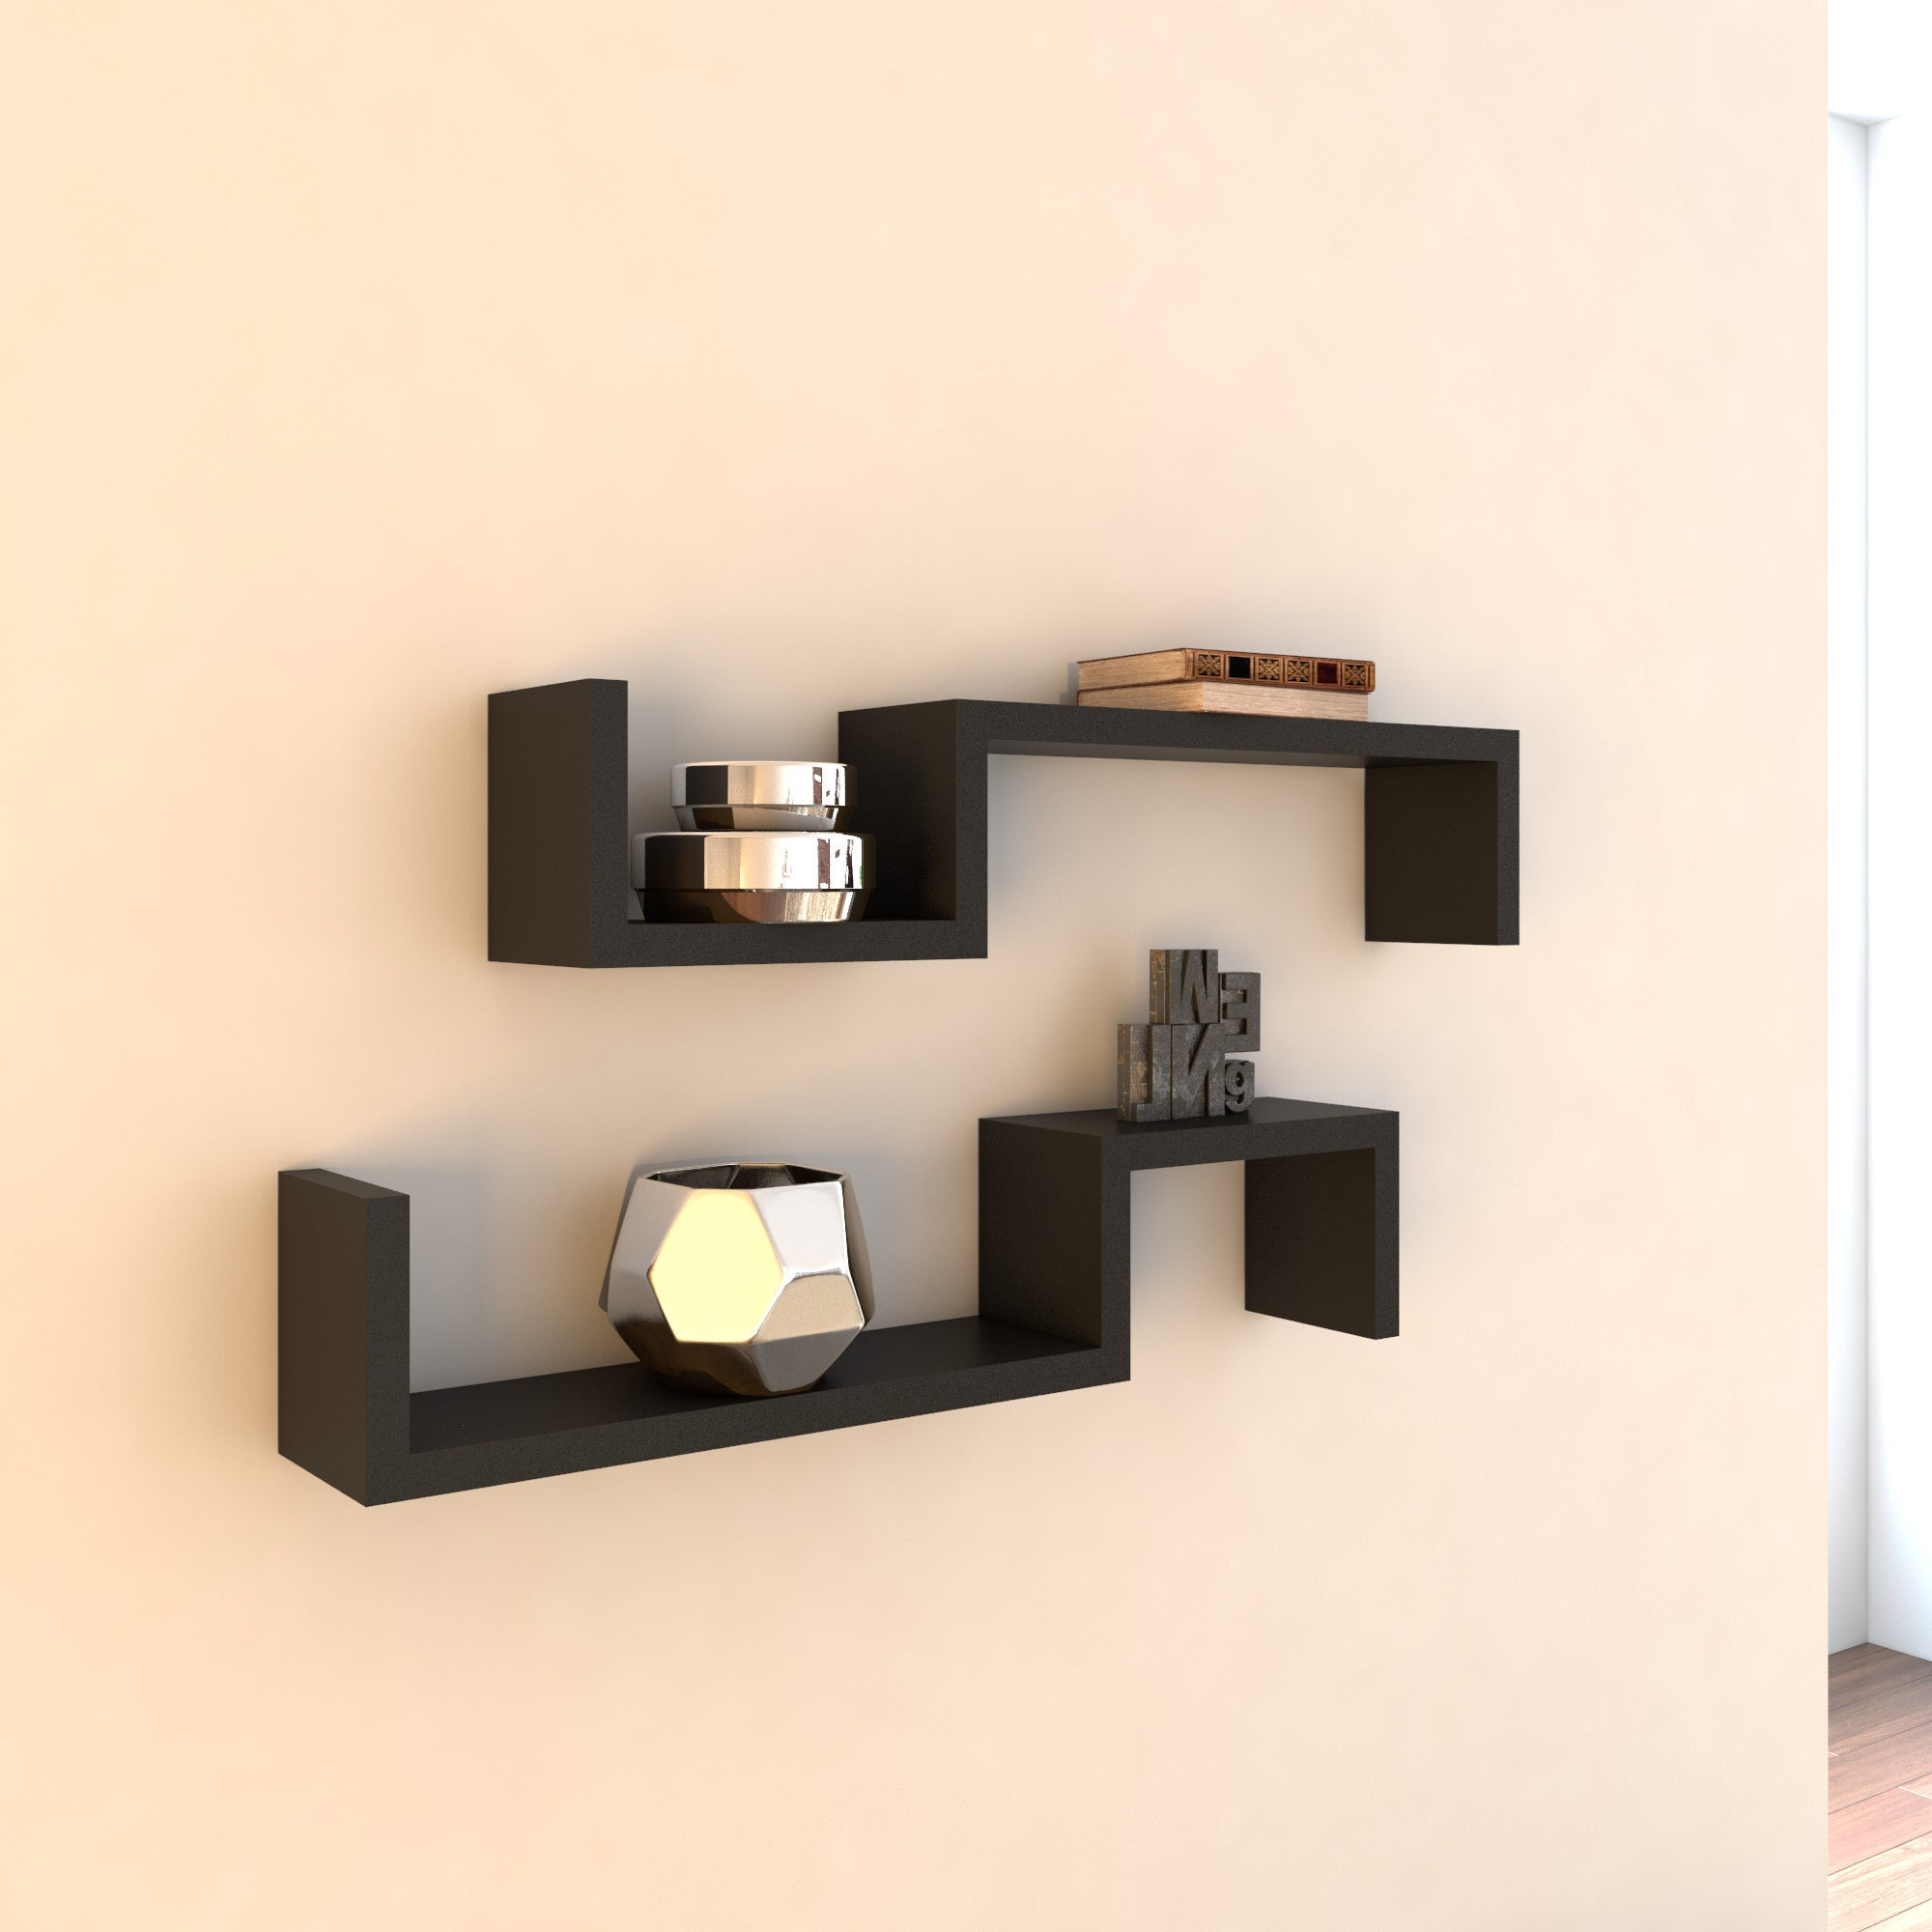 Porch Den Montclair Patton Black S Wall Mount Shelves Set Of 2 Free Shipping On Orders Over 45 16404255